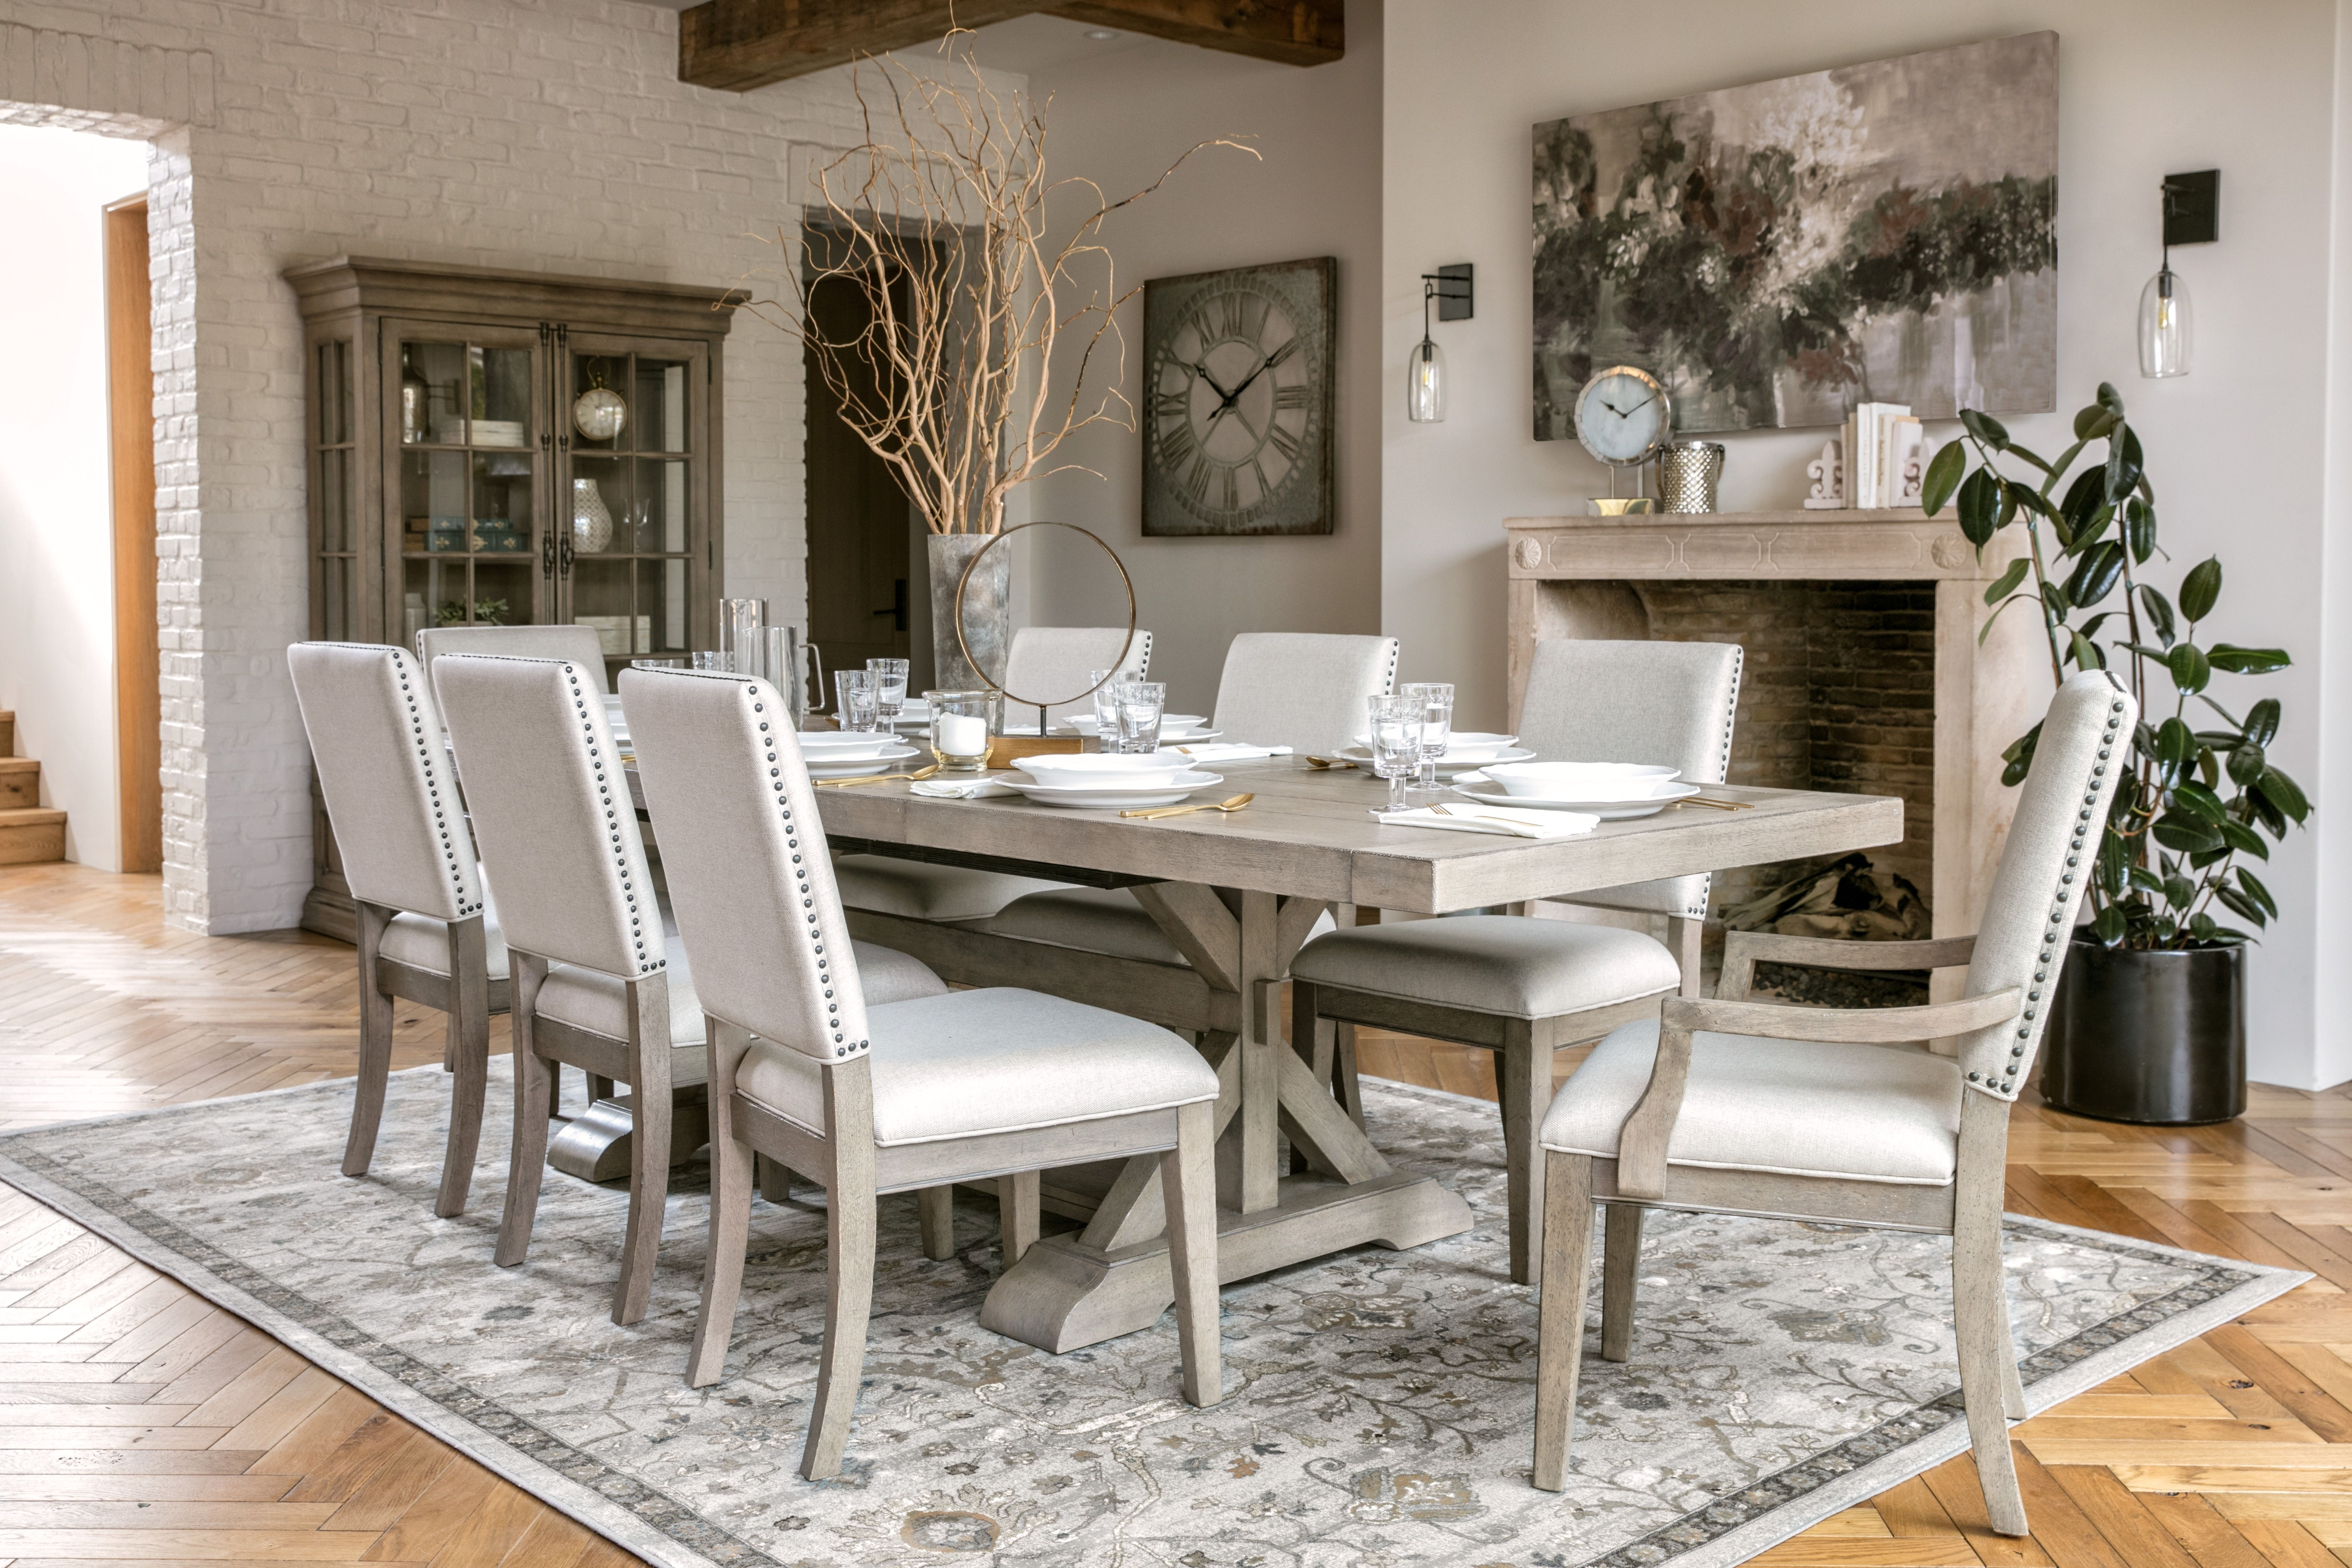 Walden 9 Piece Extension Dining Set | Nailhead Trim, Side Chair And With Regard To Most Recently Released Caden 7 Piece Dining Sets With Upholstered Side Chair (View 18 of 20)